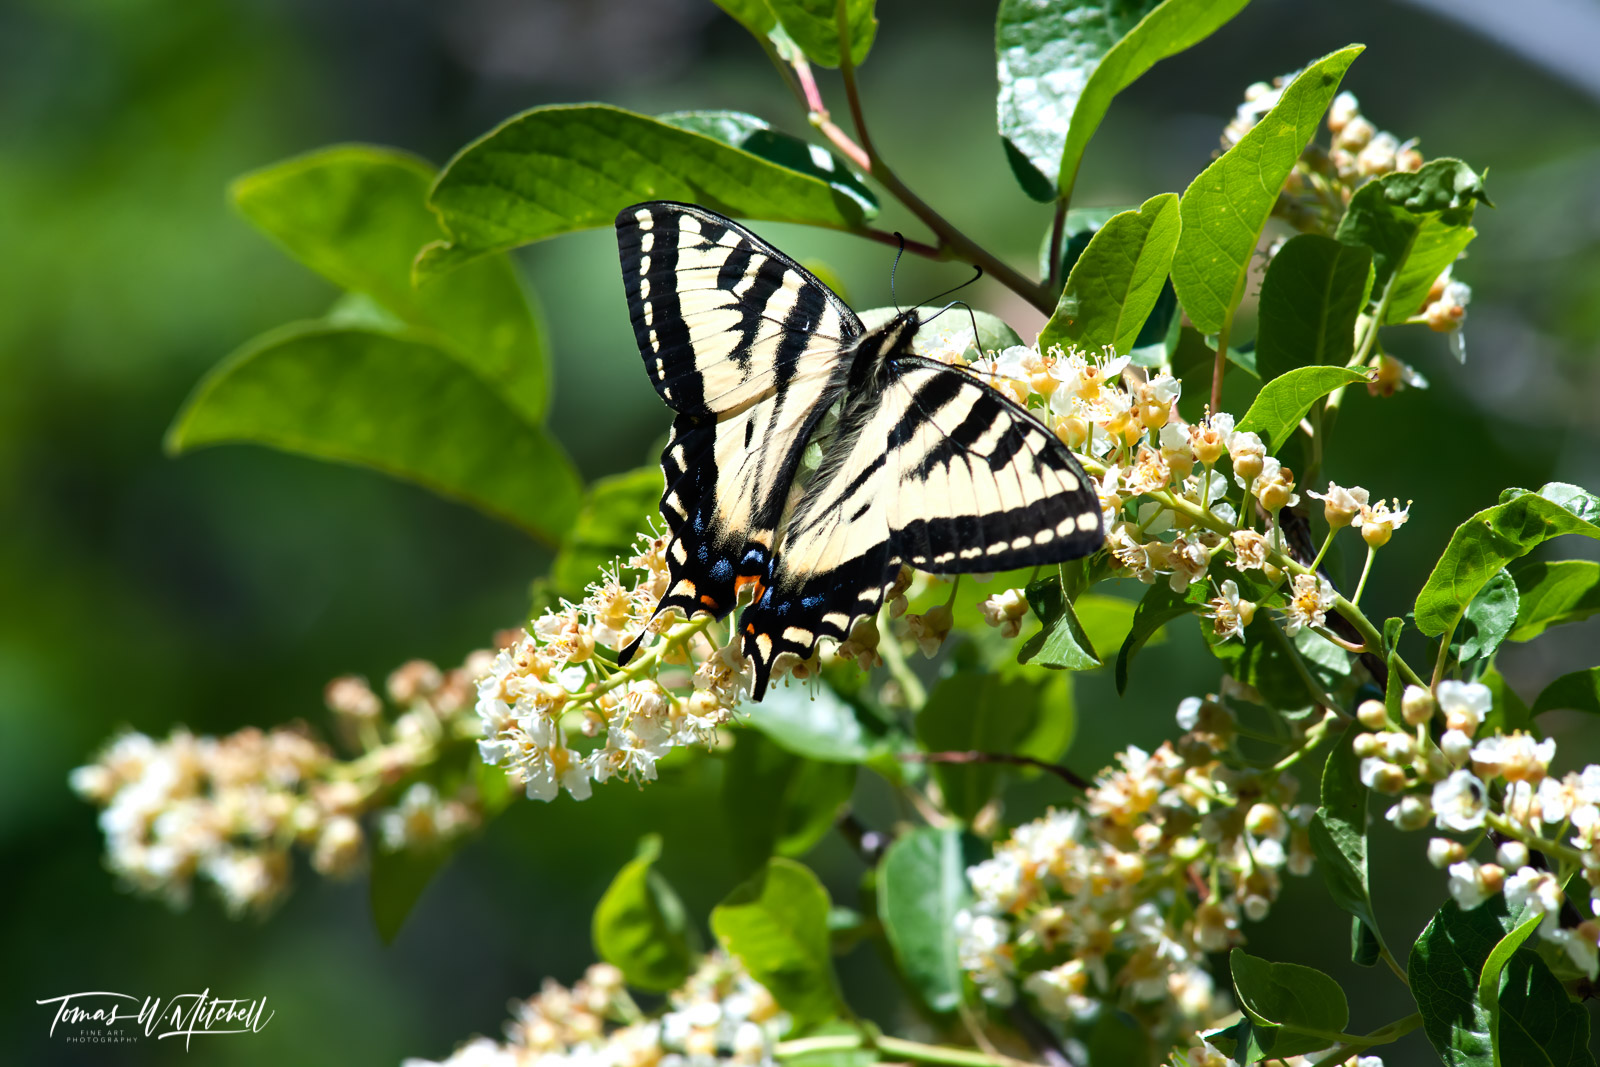 limited edition, fine art, prints, Uinta Mountains, Utah, Butterfly, Tiger Swallowtail, Choke Cherry, bush, yellow, flowers, green, leaves, photo